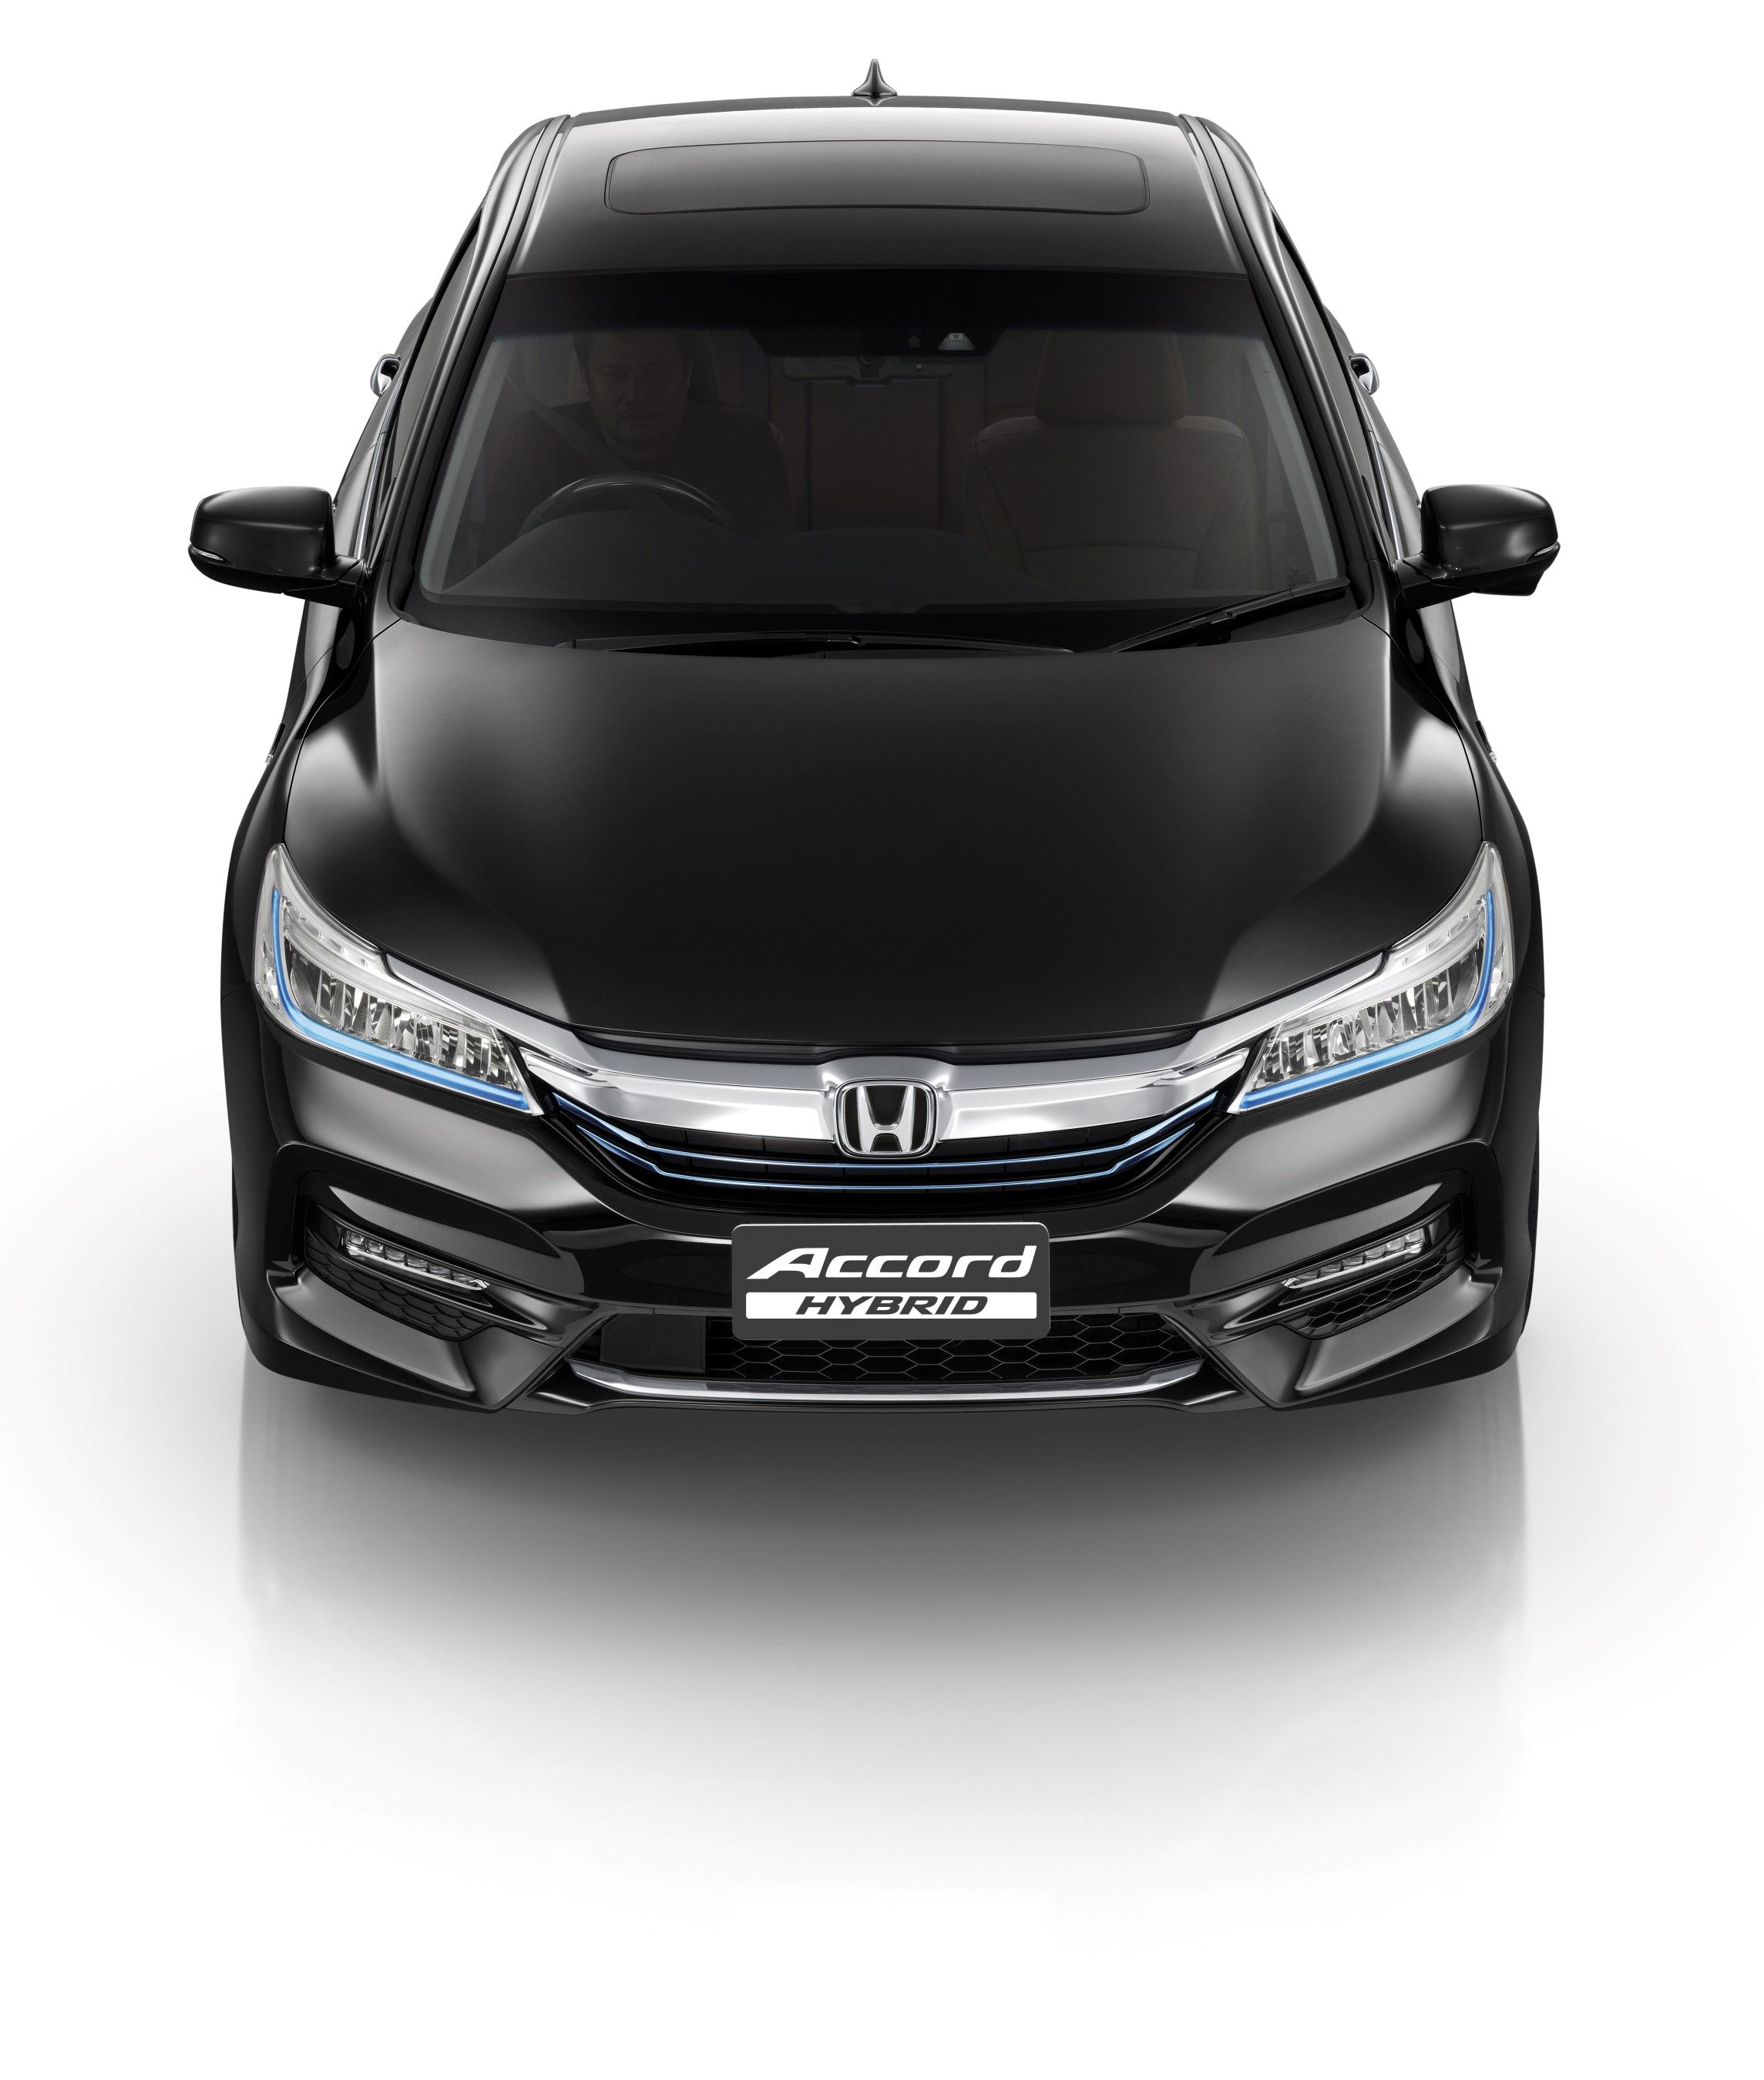 Best 25 honda accord hybrid 2016 ideas on pinterest honda accord models honda accord 2015 and 2015 honda accord sedan